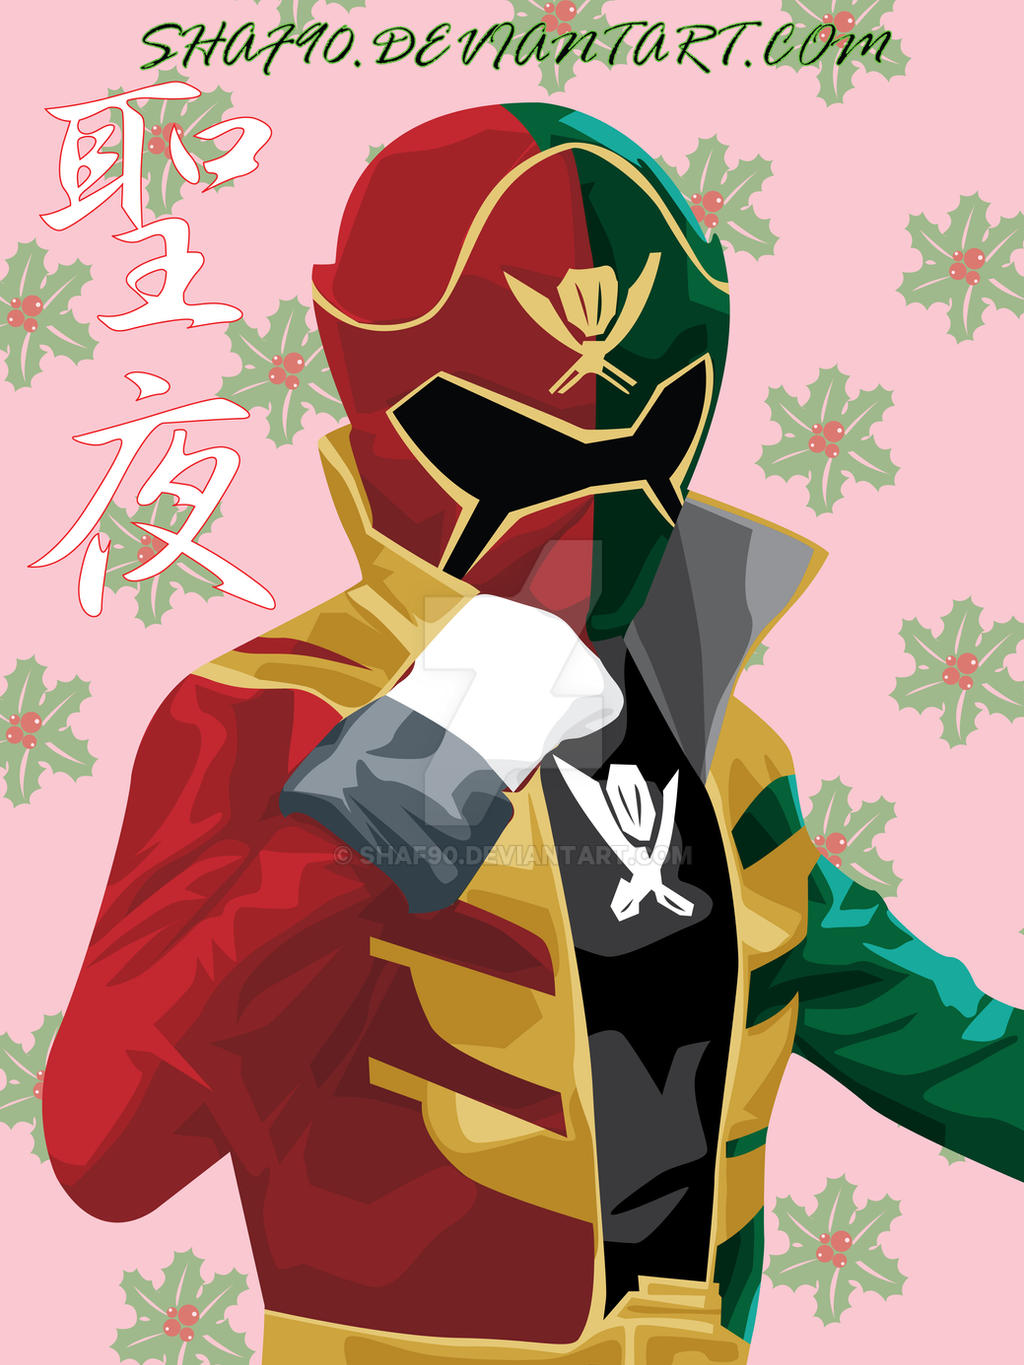 Gokai Christmas by Shaf90 on DeviantArt